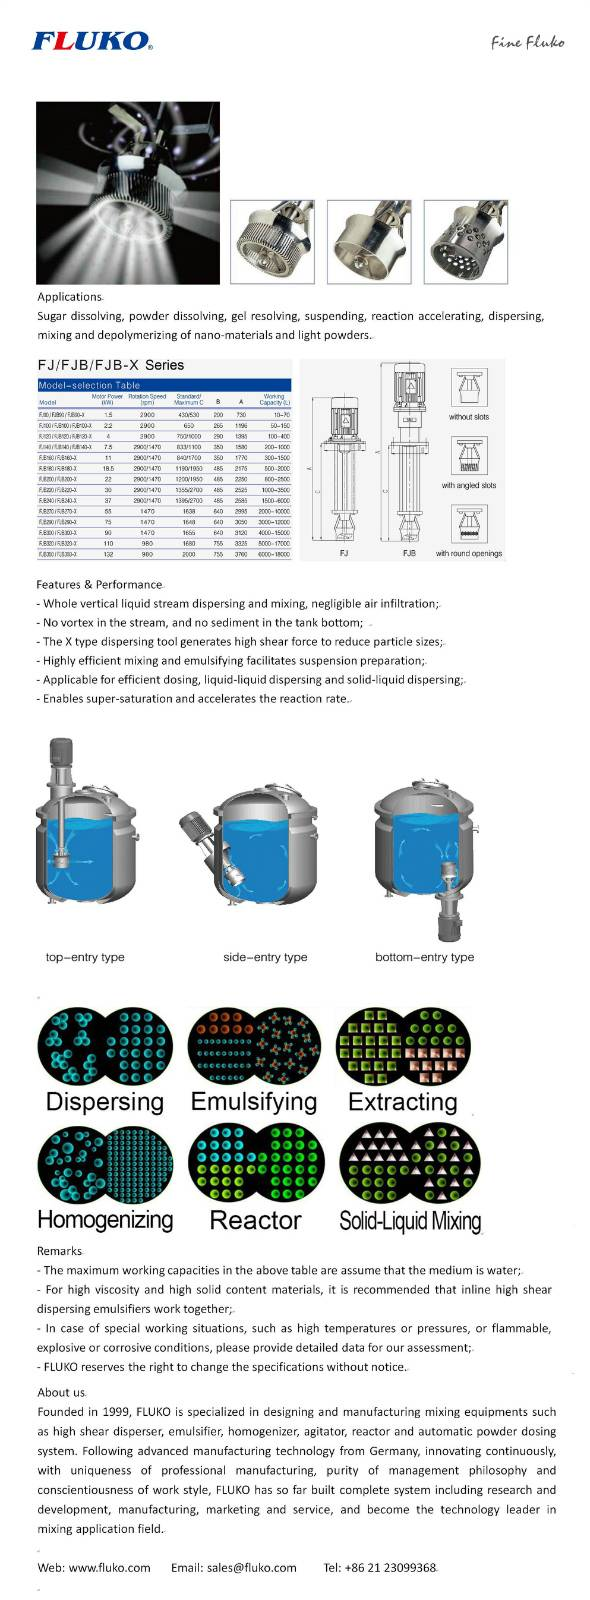 FLUKO Batch Jetmixer,Dispersing Mixer